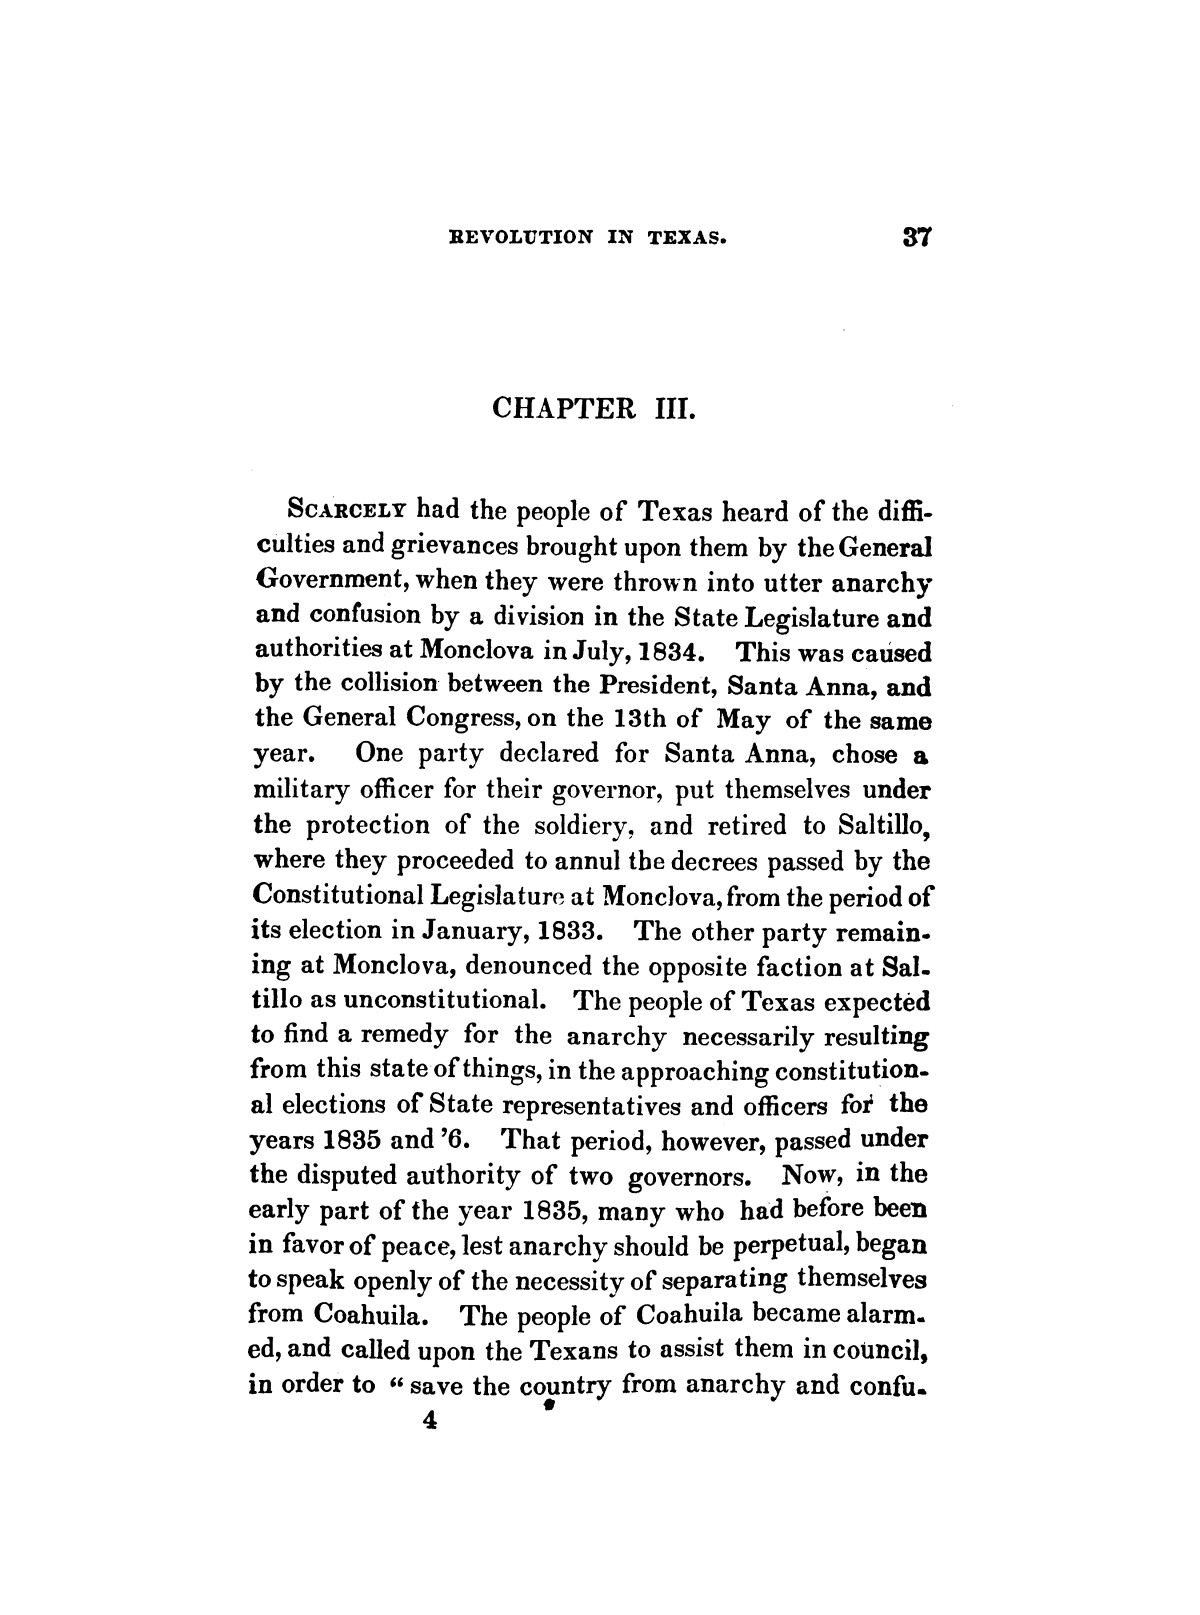 History of the revolution in Texas, particularly of the war of 1835 & '36; together with the latest geographical, topographical, and statistical accounts of the country, from the most authentic sources. Also, an appendix. By the Rev. C. Newell.                                                                                                      [Sequence #]: 49 of 227